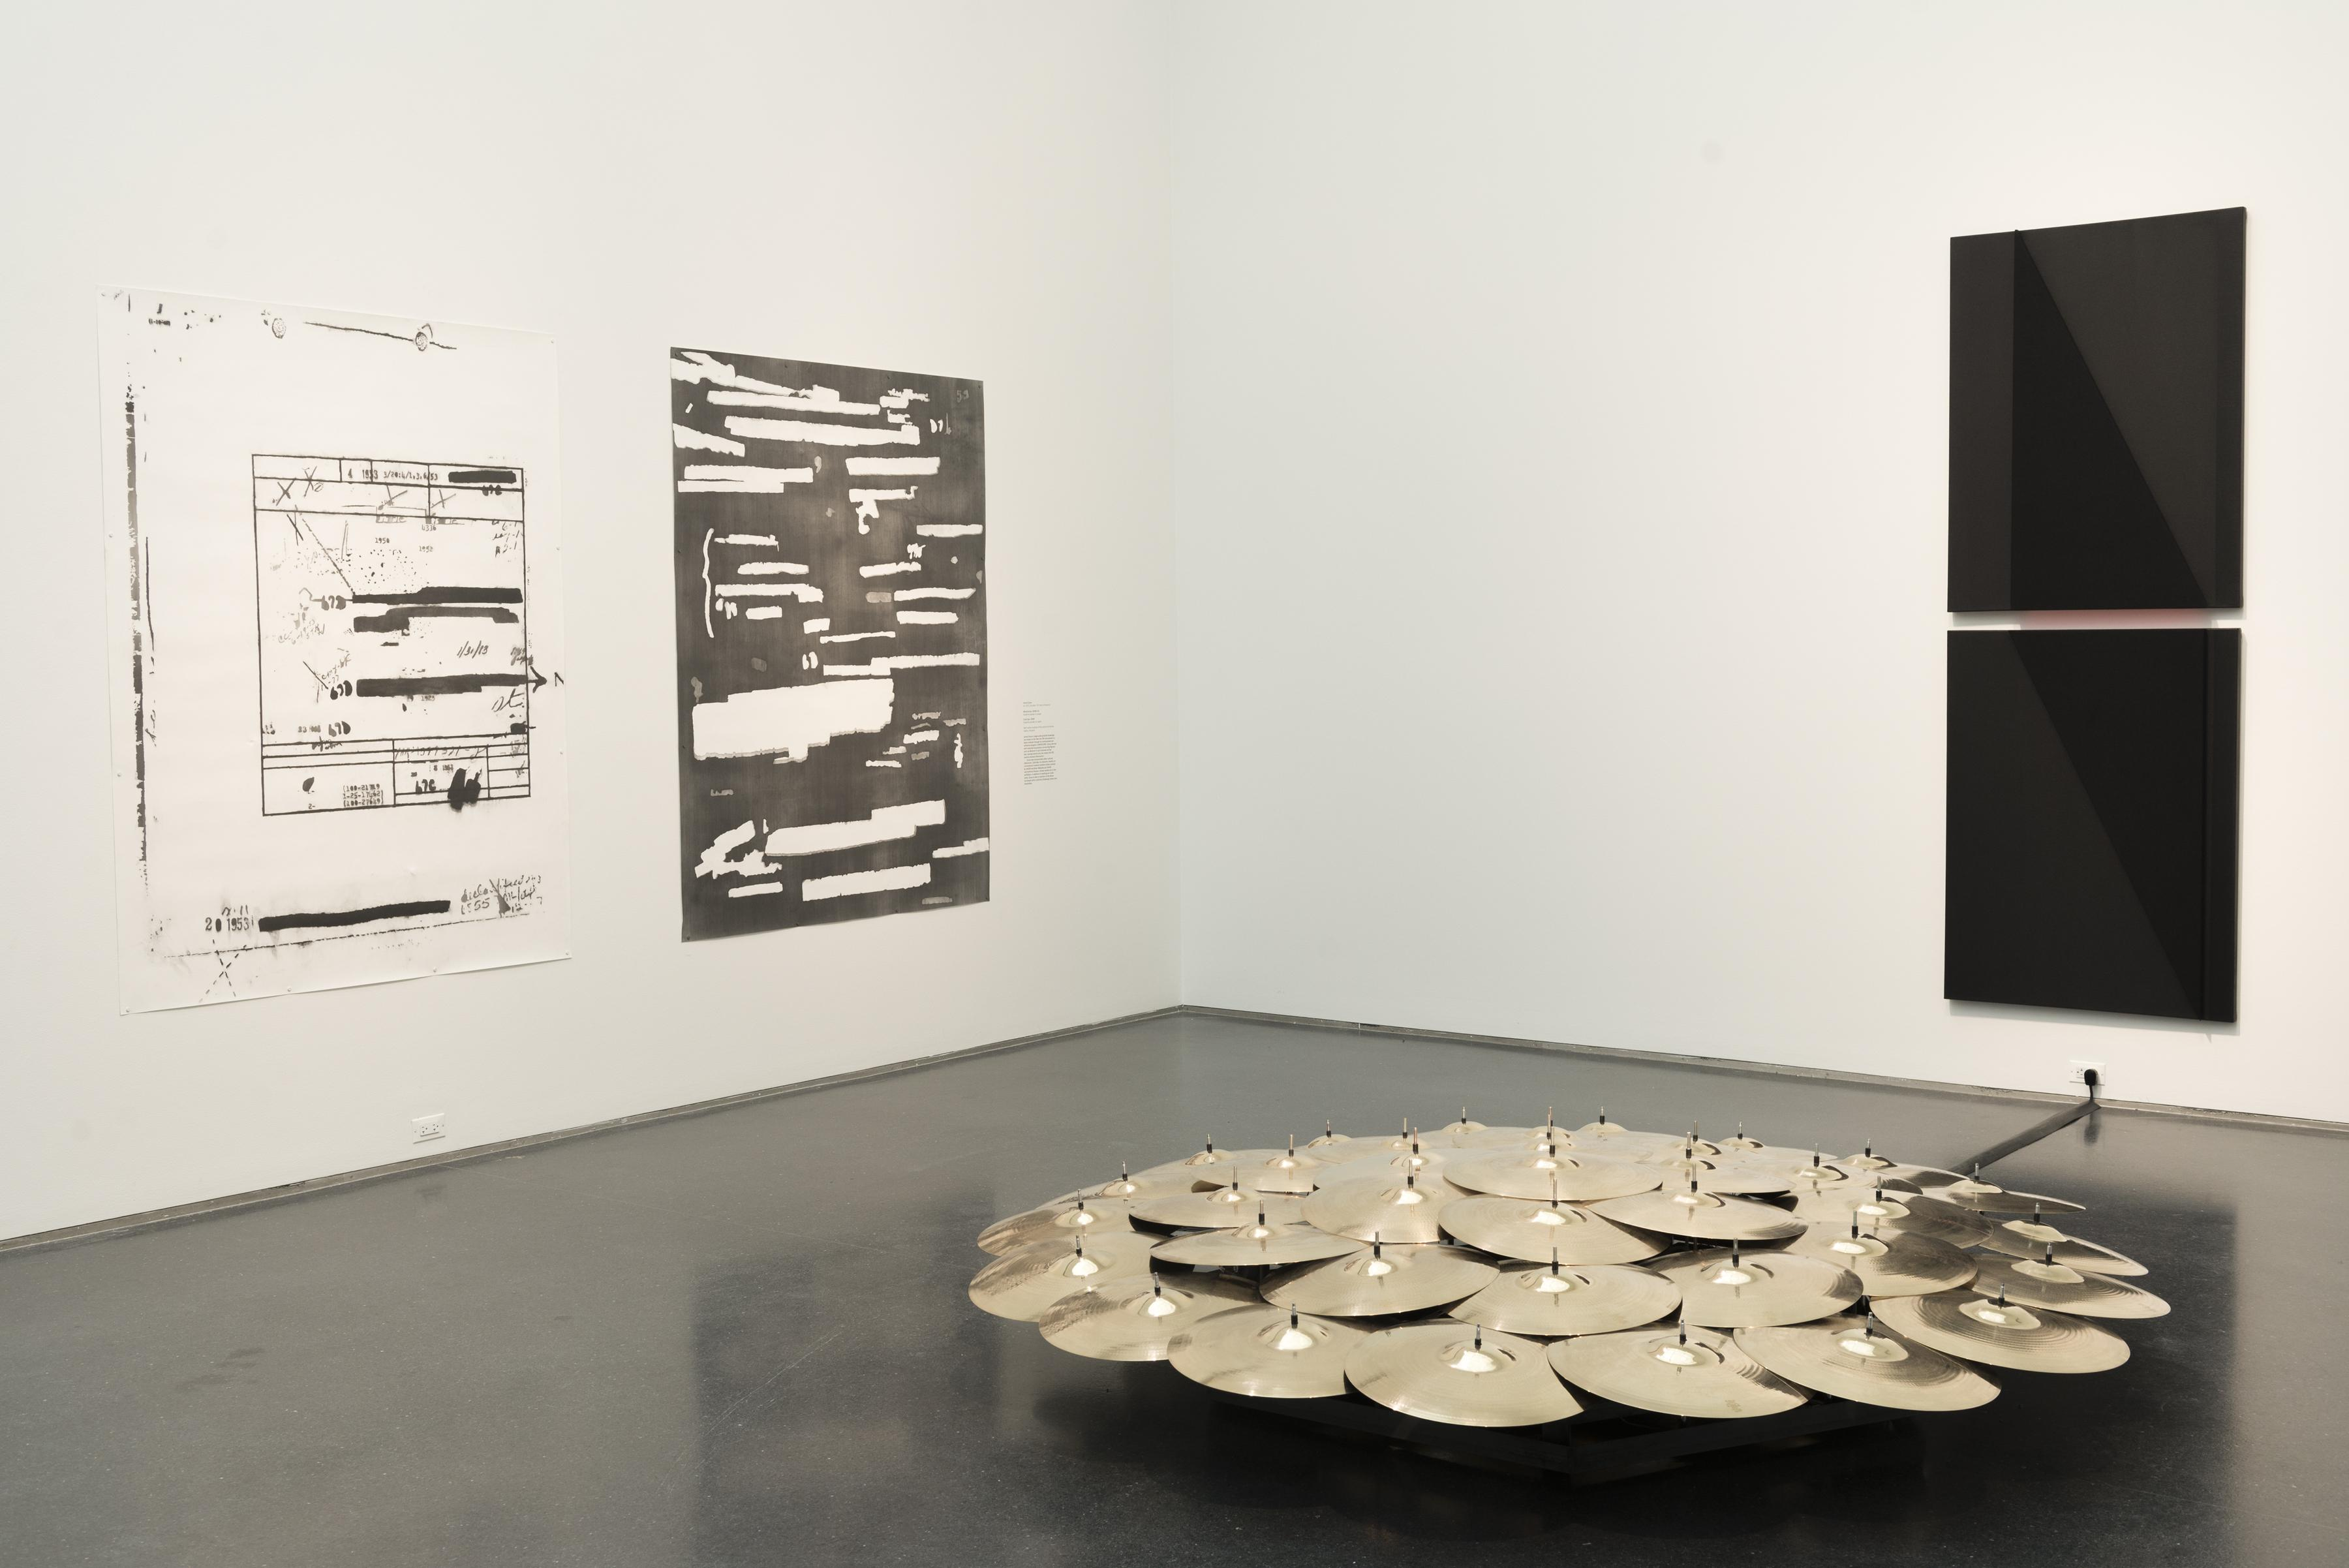 Several dozen brass cymbals are clustered together in a circle. Behind them to the left, two black-and-white paintings hang side by side, and to the right, two black panels are stacked vertically.